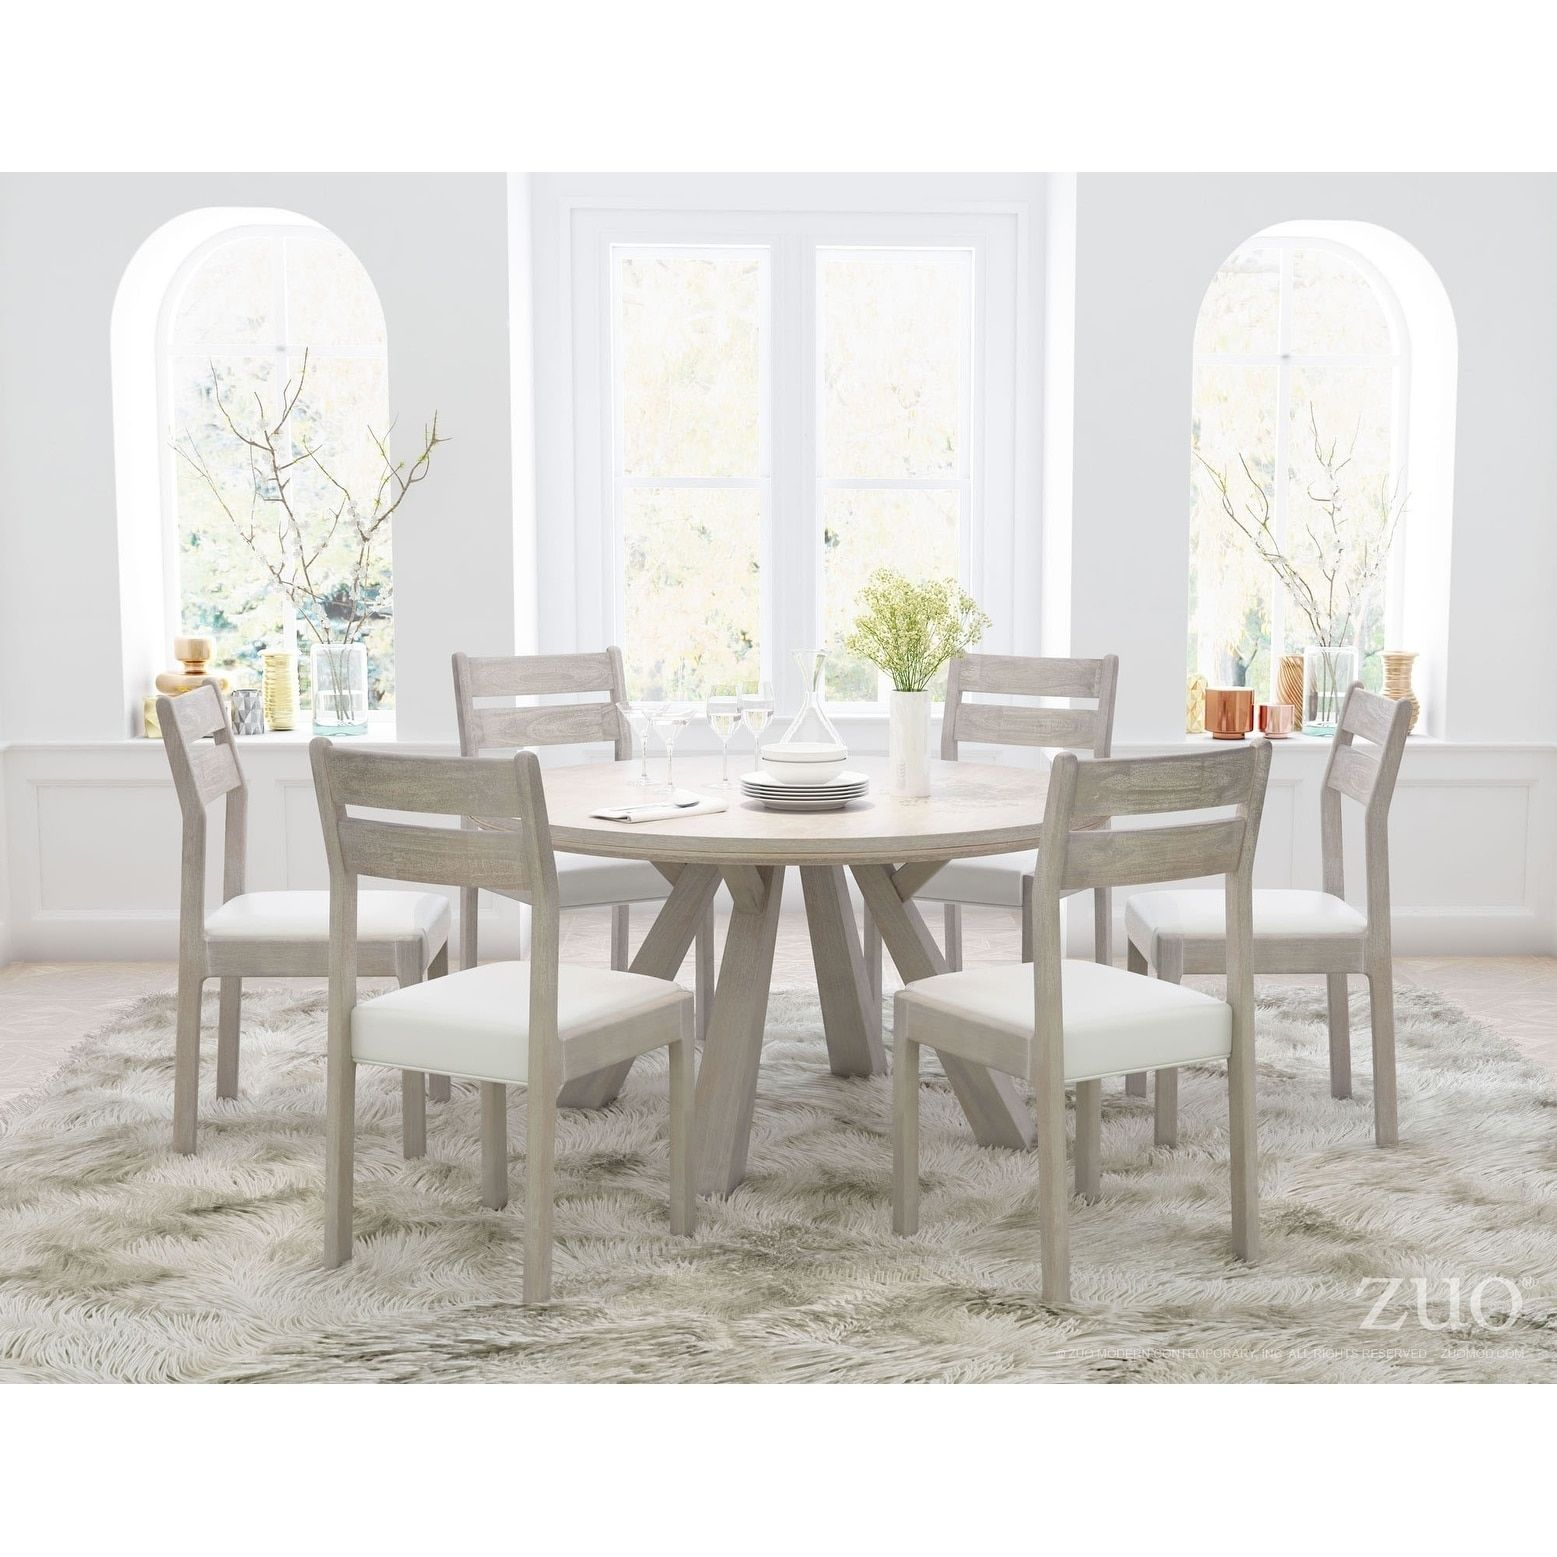 Beaumont grey acacia wood round dining table